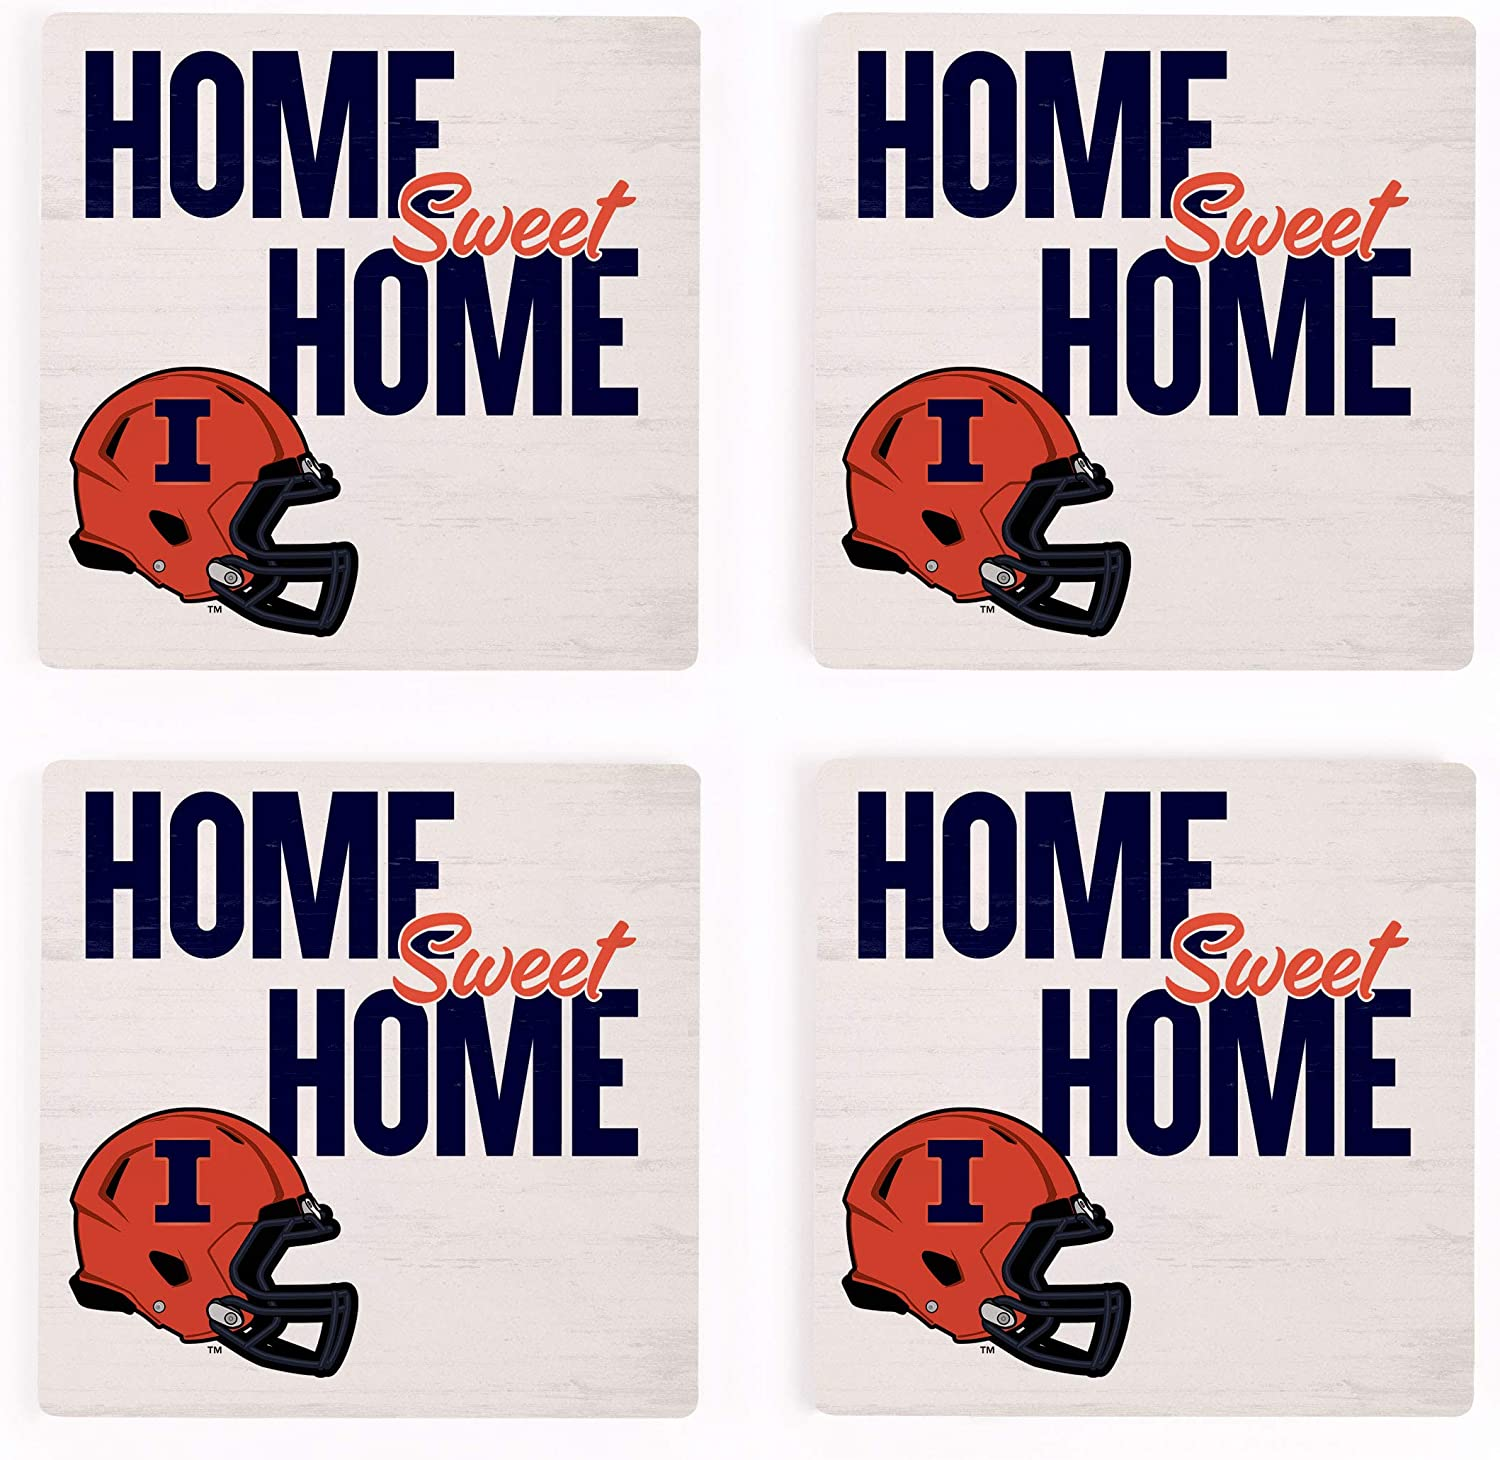 Home Sweet Home University of Illinois 4 x 4 Ceramic Coasters Pack of 4